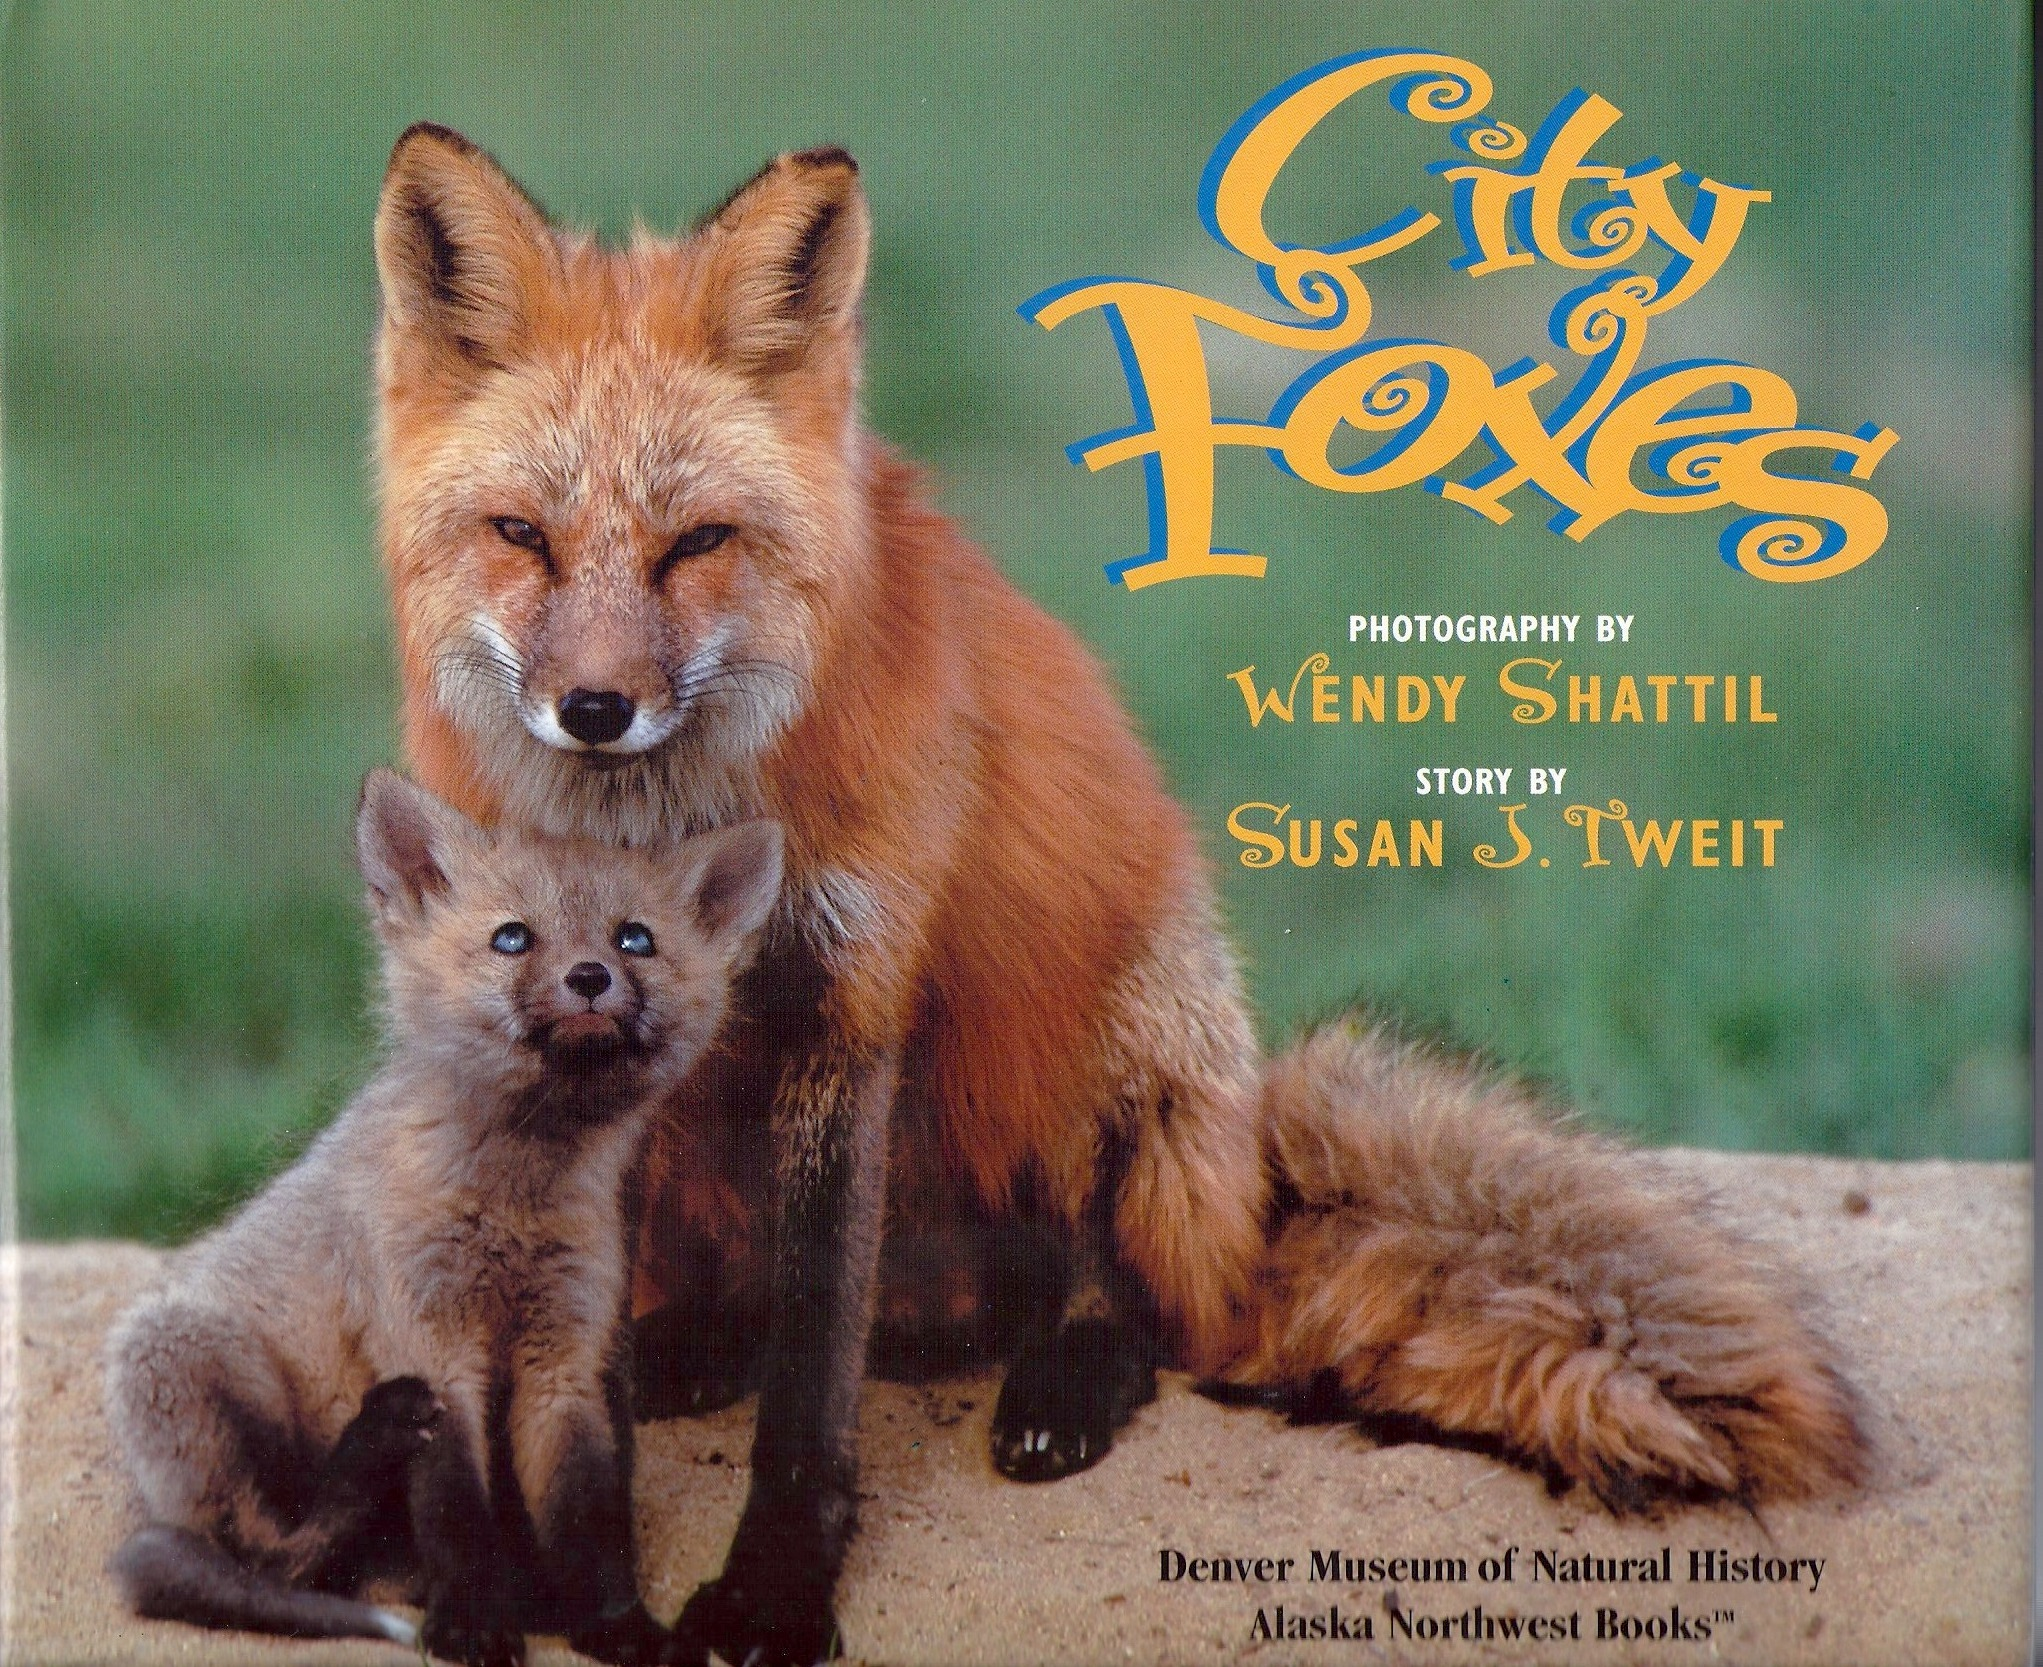 City Foxes, photos by Wendy Shattil, text by Susan J. Tweit, named Outstanding Science Trade Book for Children by the Children's Book Council